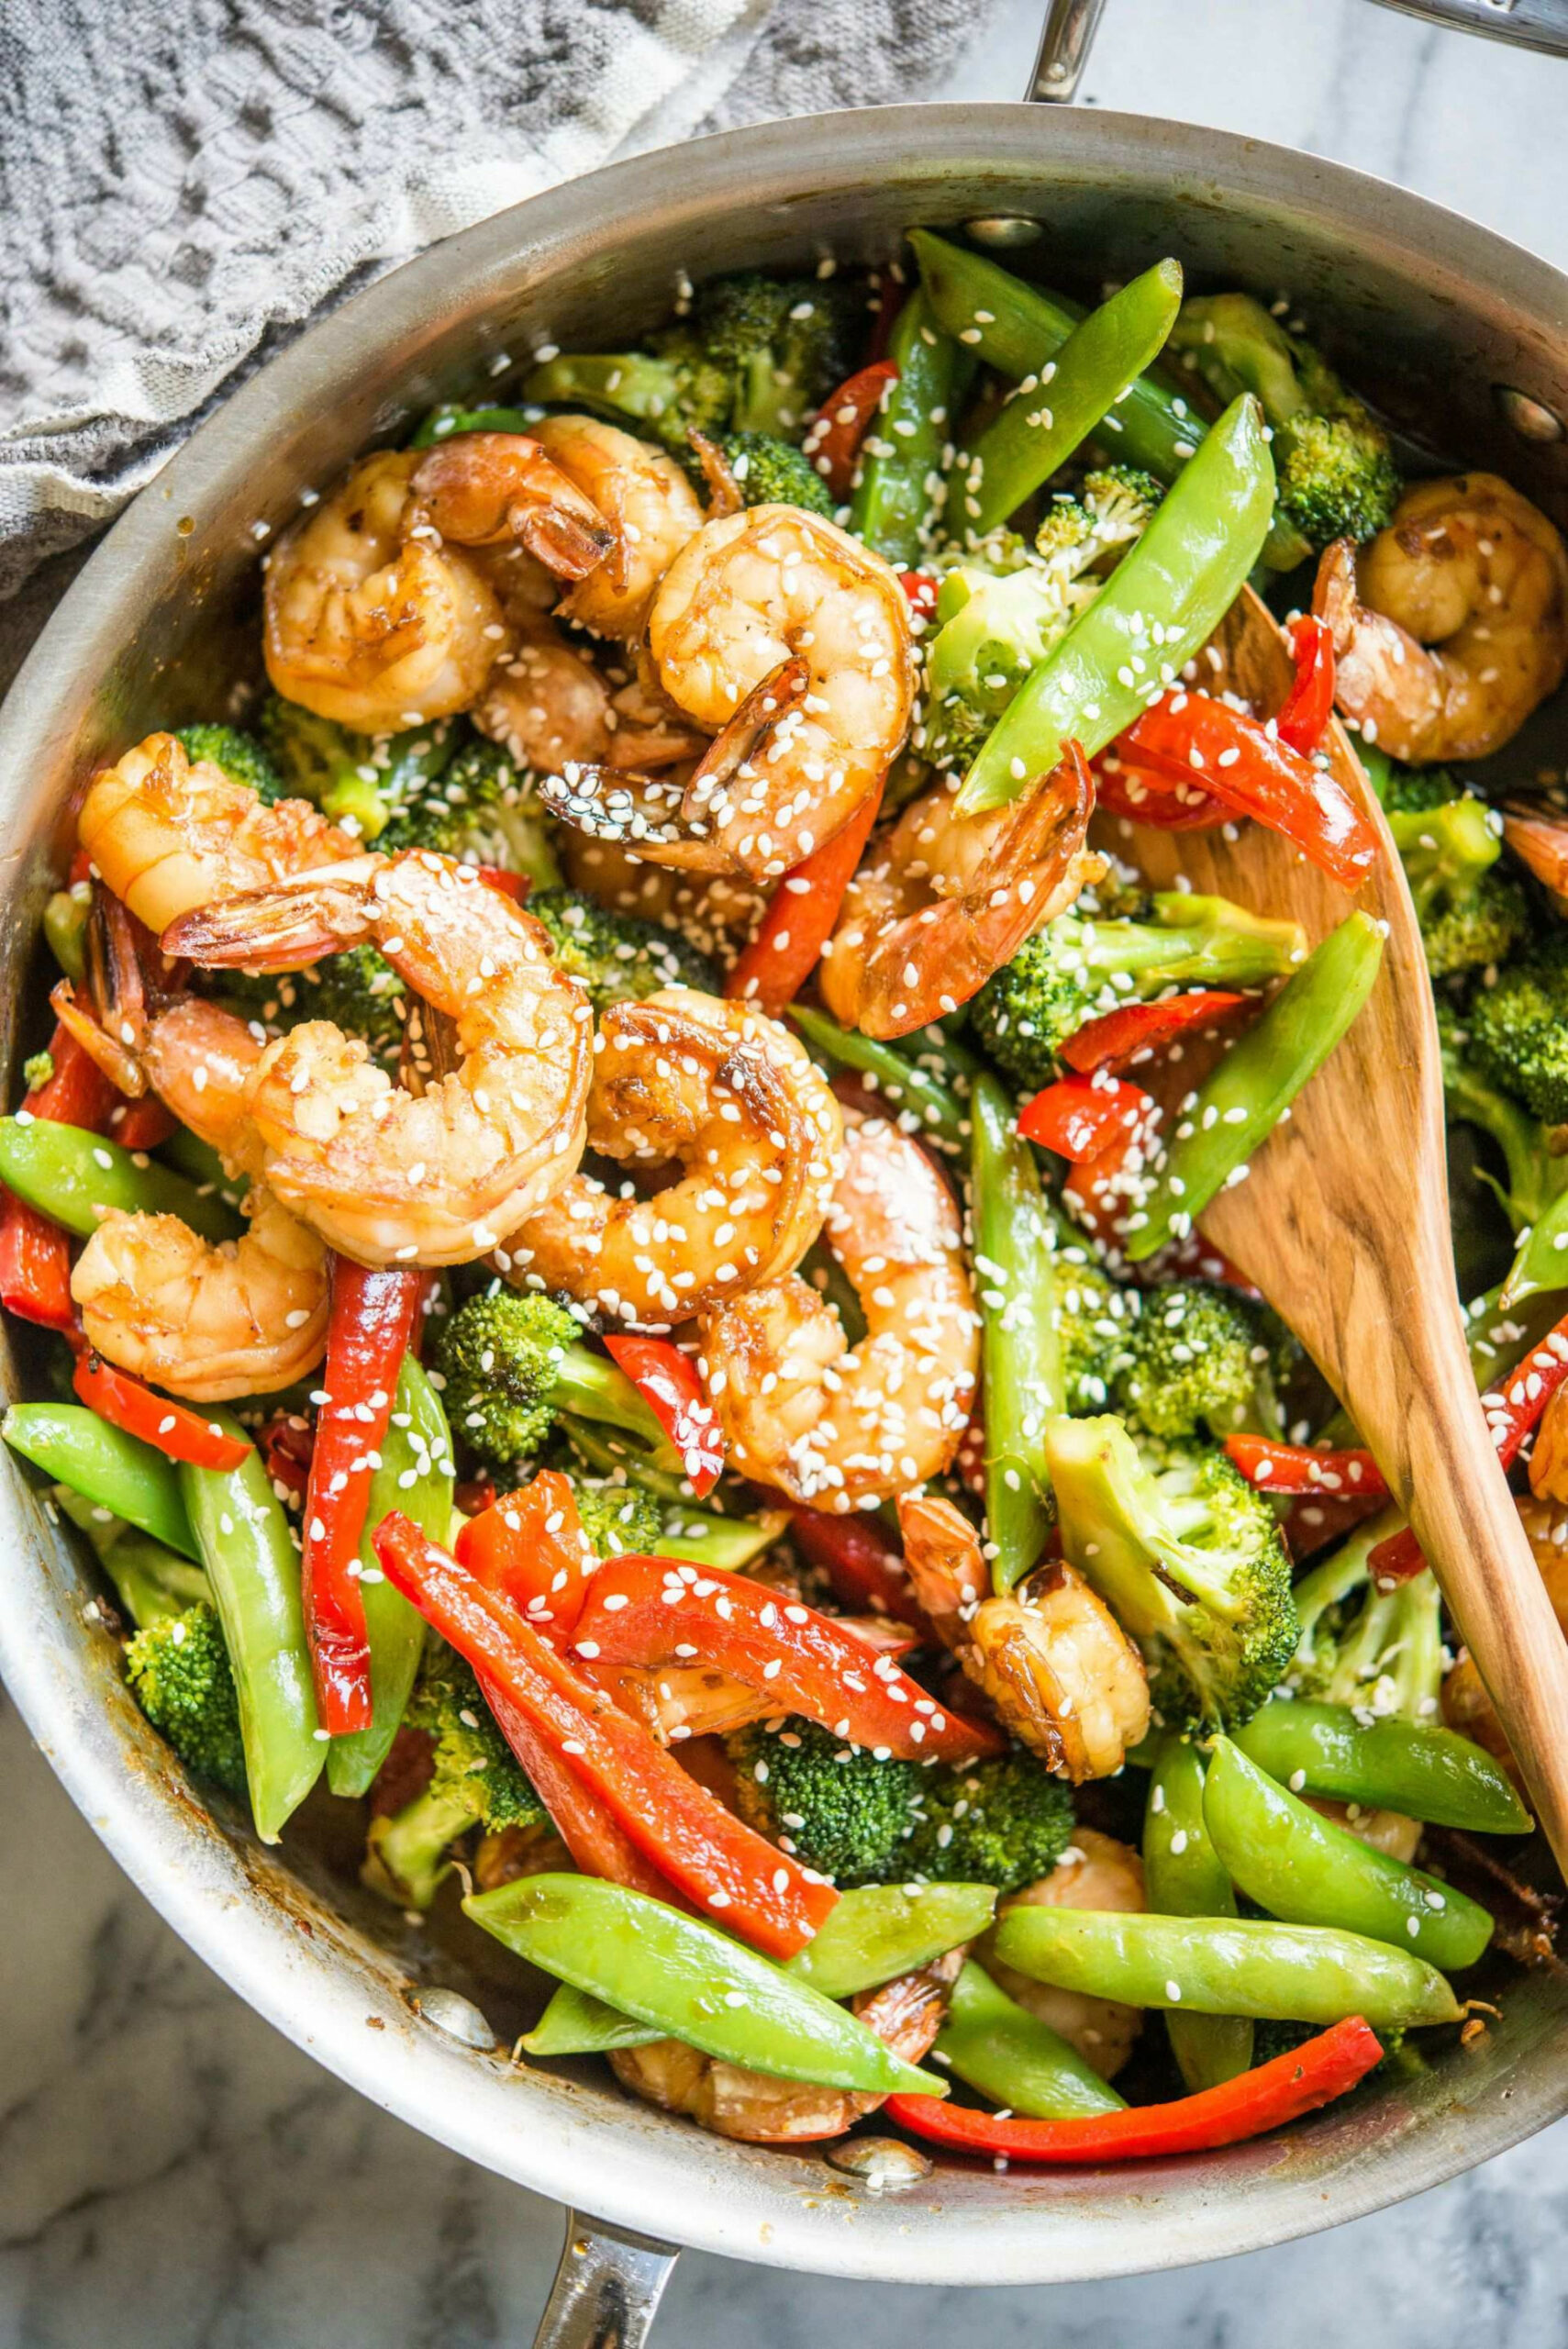 Teriyaki Shrimp And Vegetable Stir Fry - Recipes Vegetarian Stir Fry